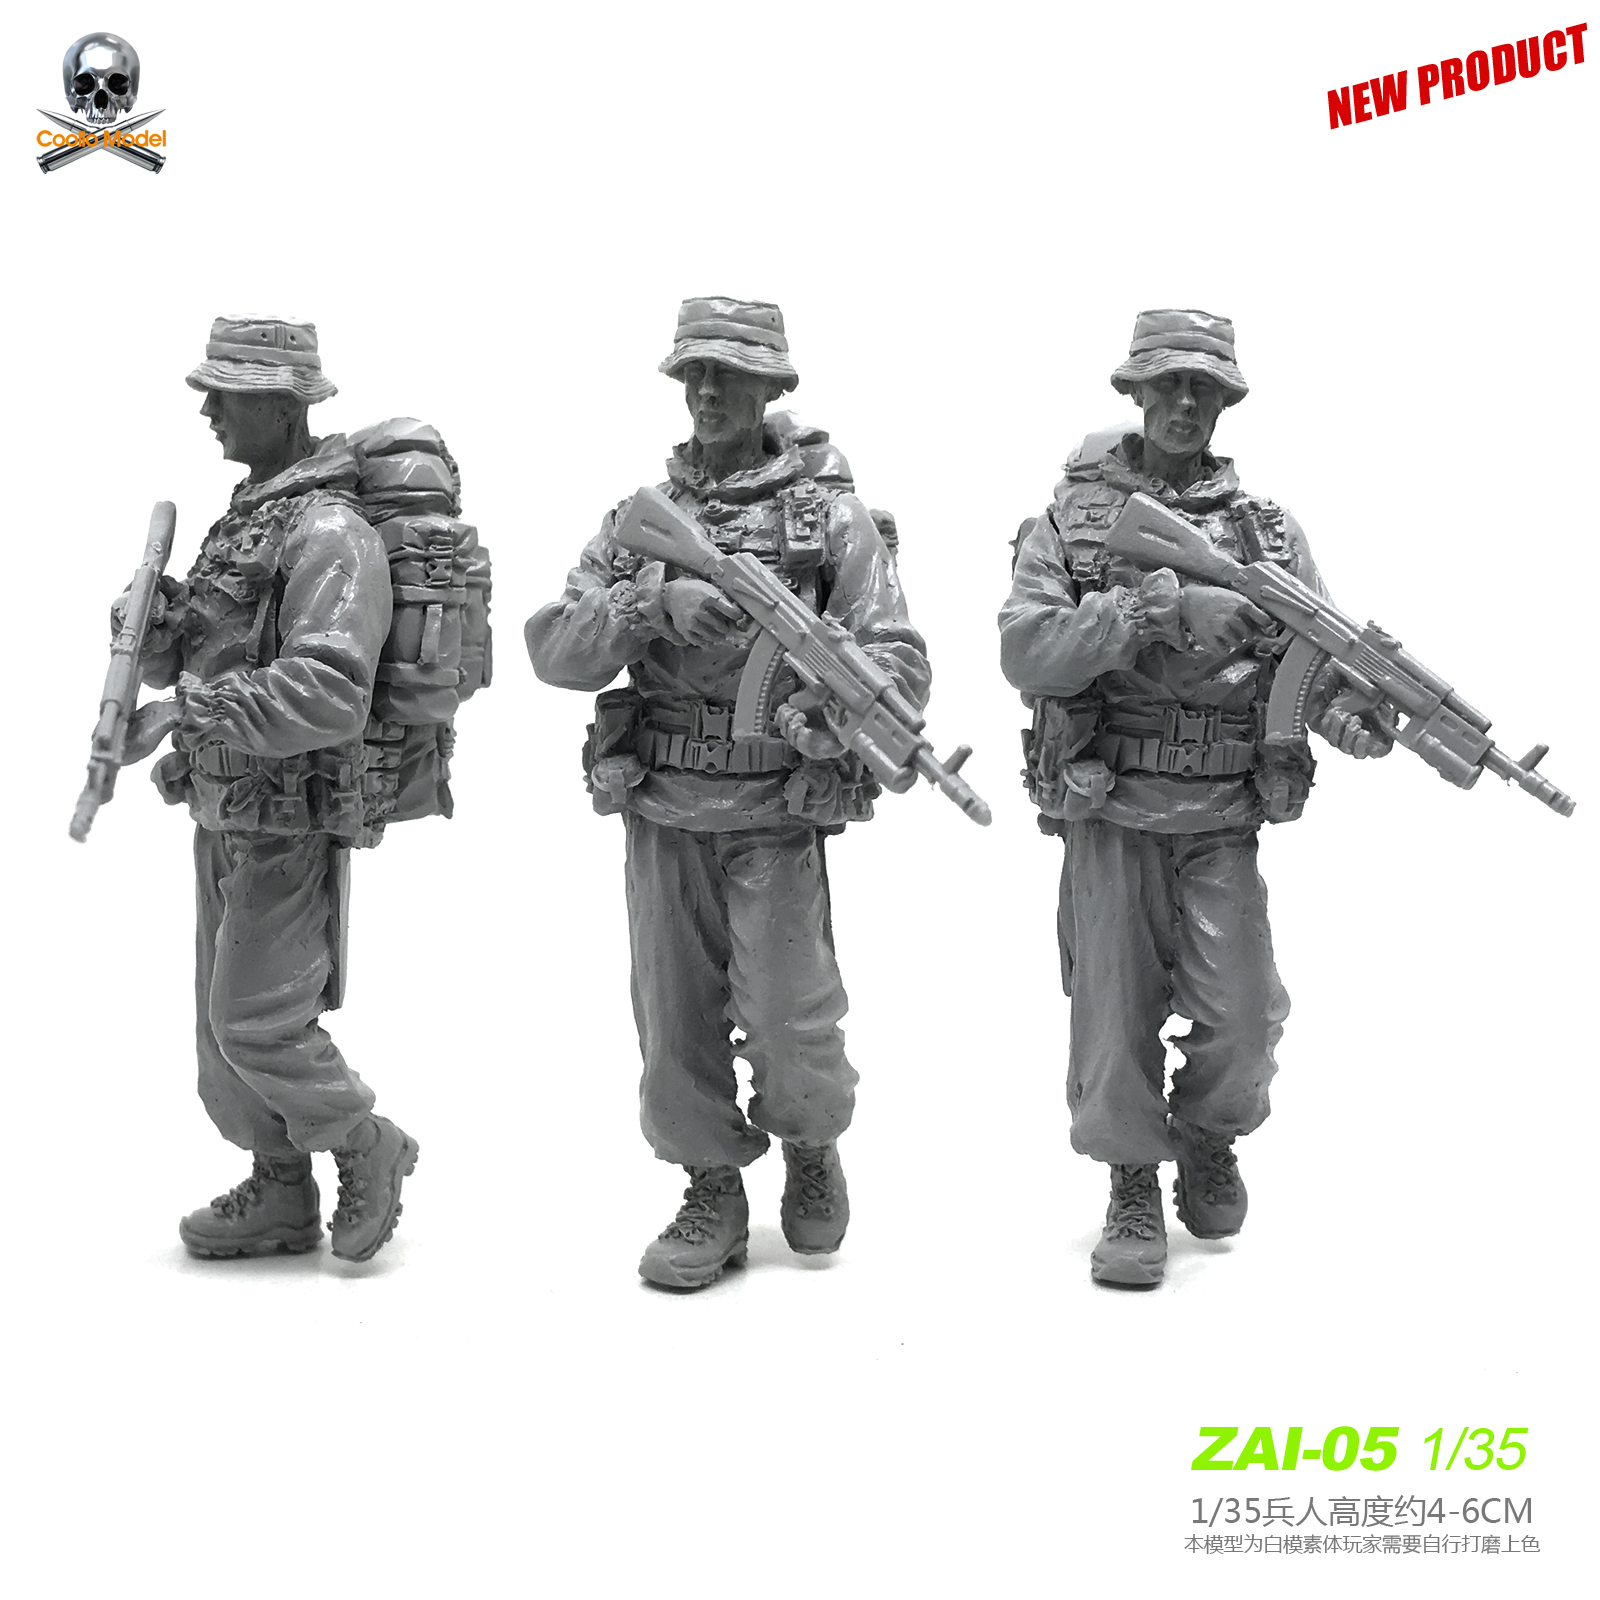 1/35 Resin Kits Russian Modern Special Forces Resin Soldier ZAI-05